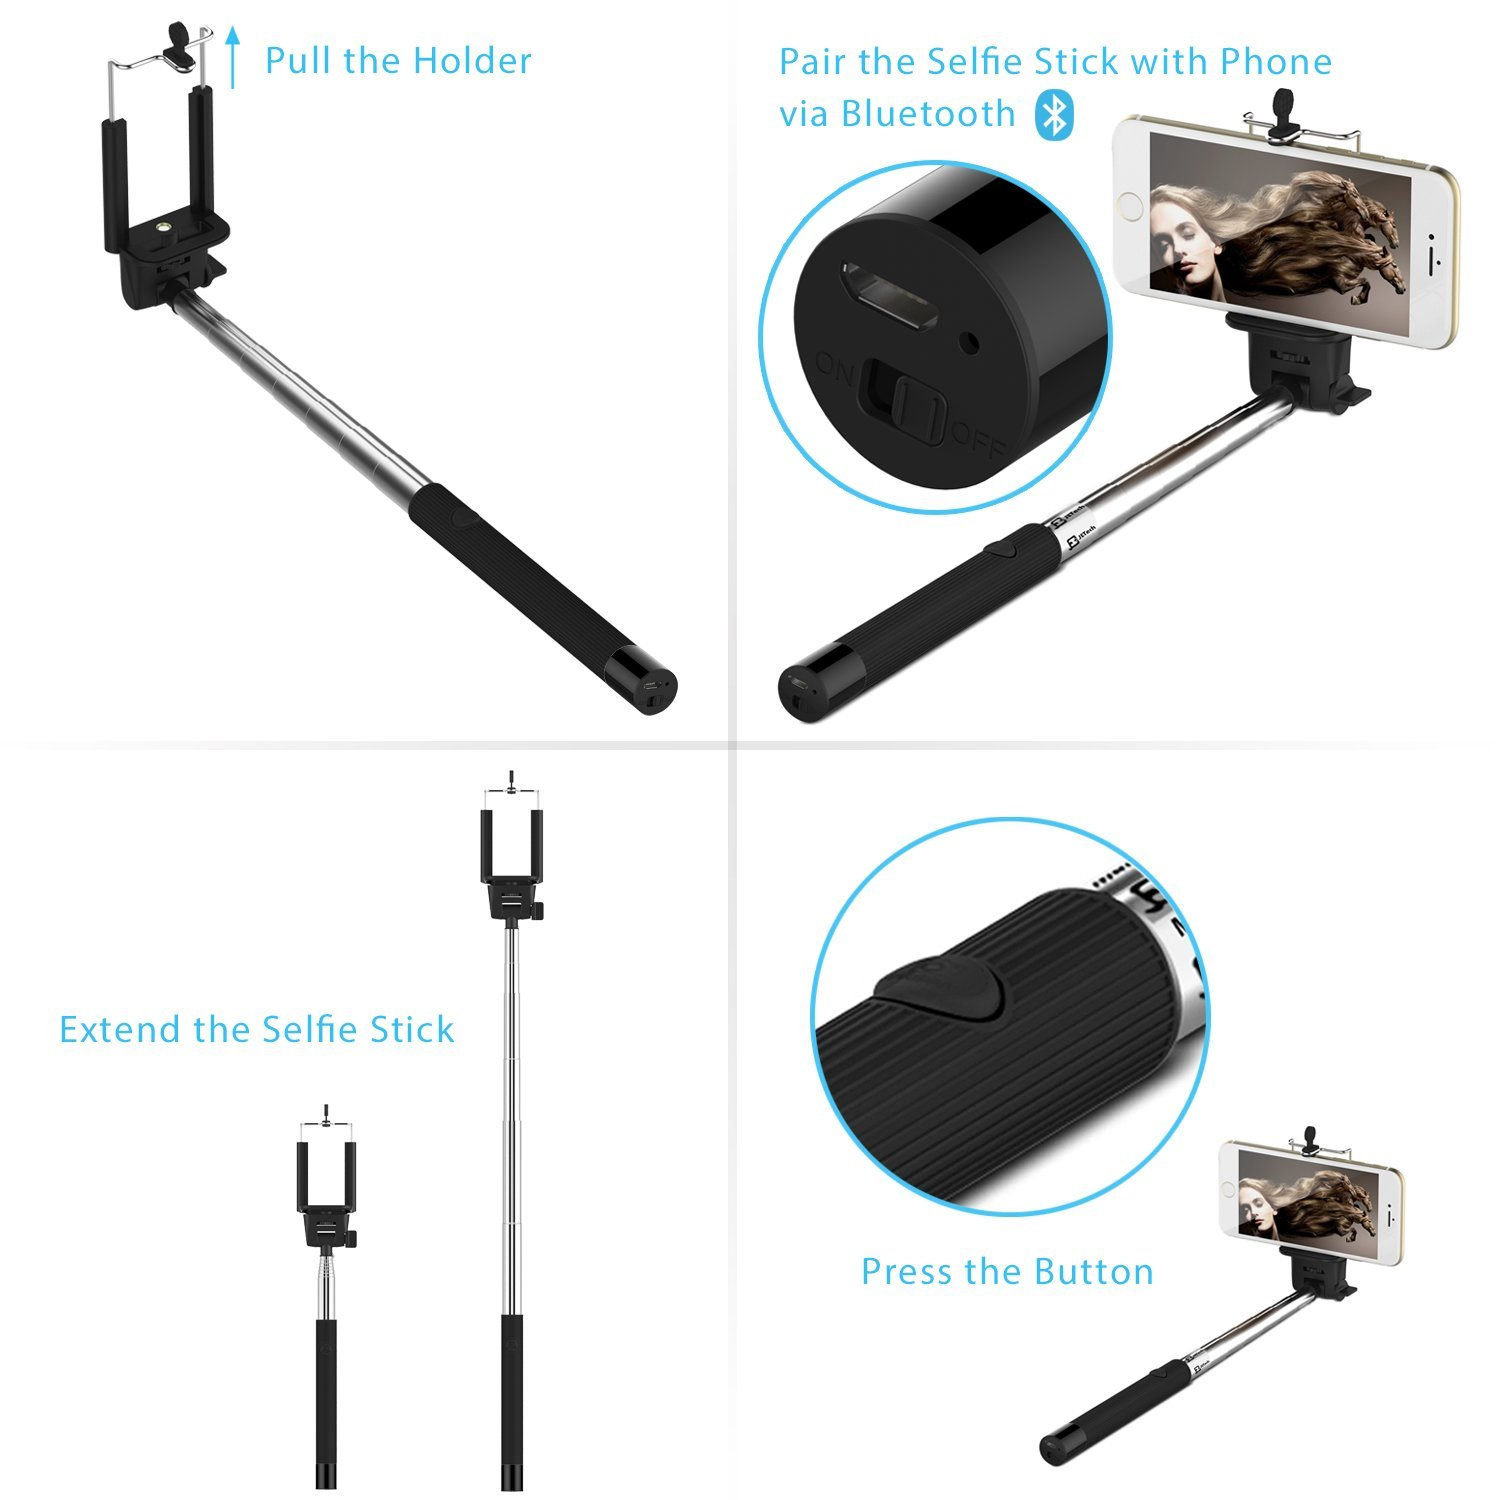 selfie stick cable control with bluetooth. Black Bedroom Furniture Sets. Home Design Ideas